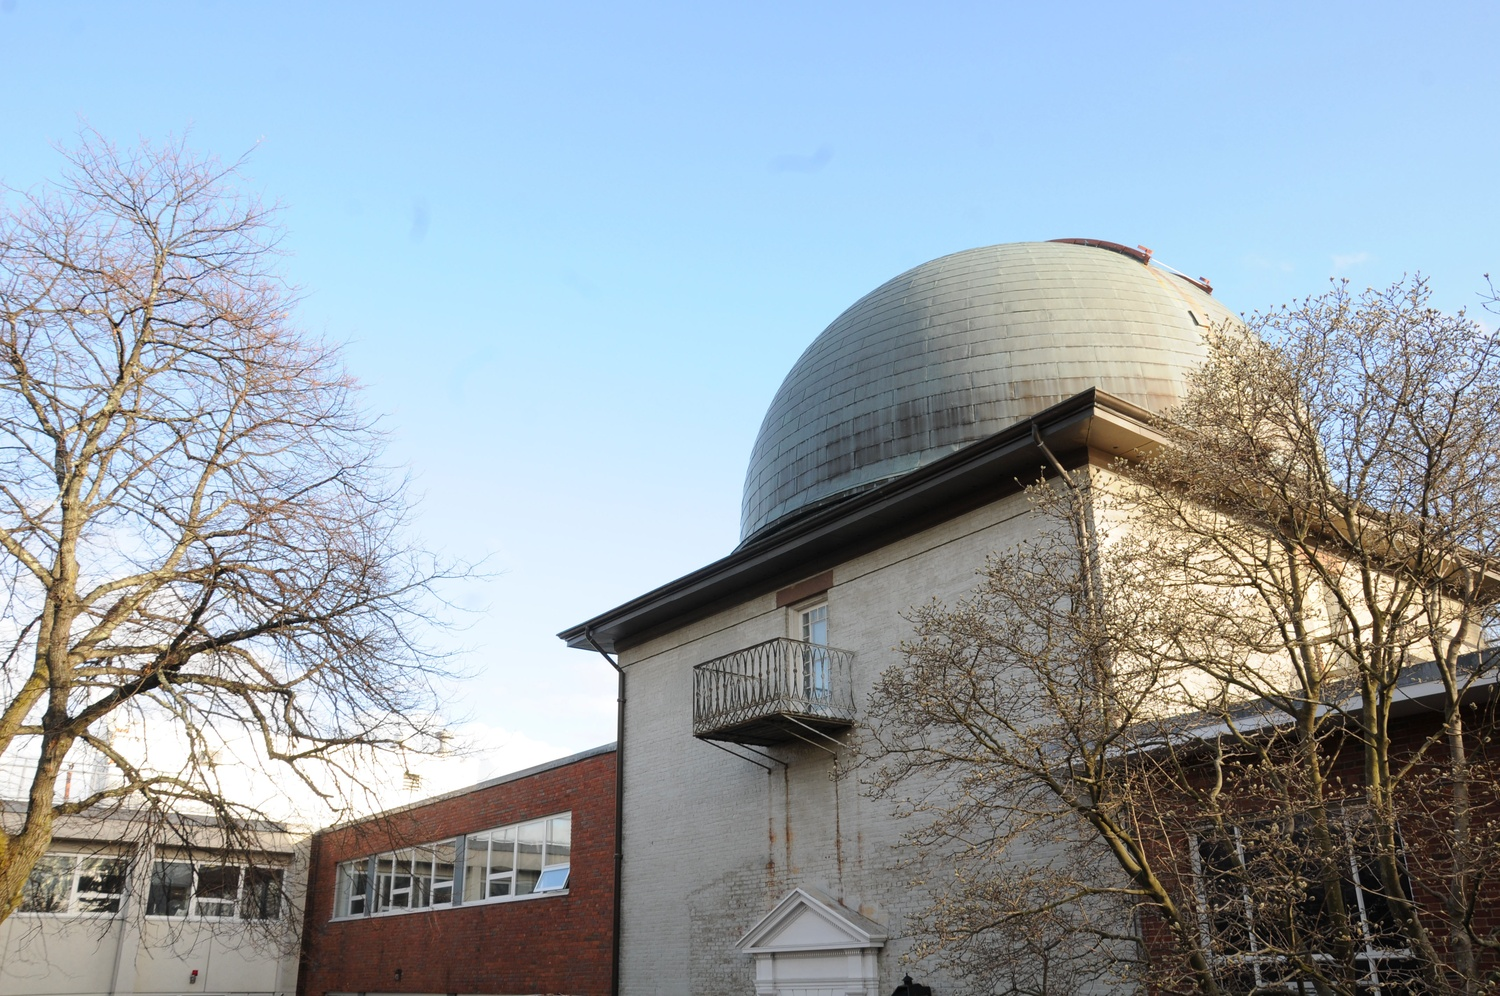 One of the telescope domes at the Harvard-Smithsonian Center for Astrophysics. Some postdoctoral fellows at the center may not receive their paychecks next month due to the partial government shutdown.